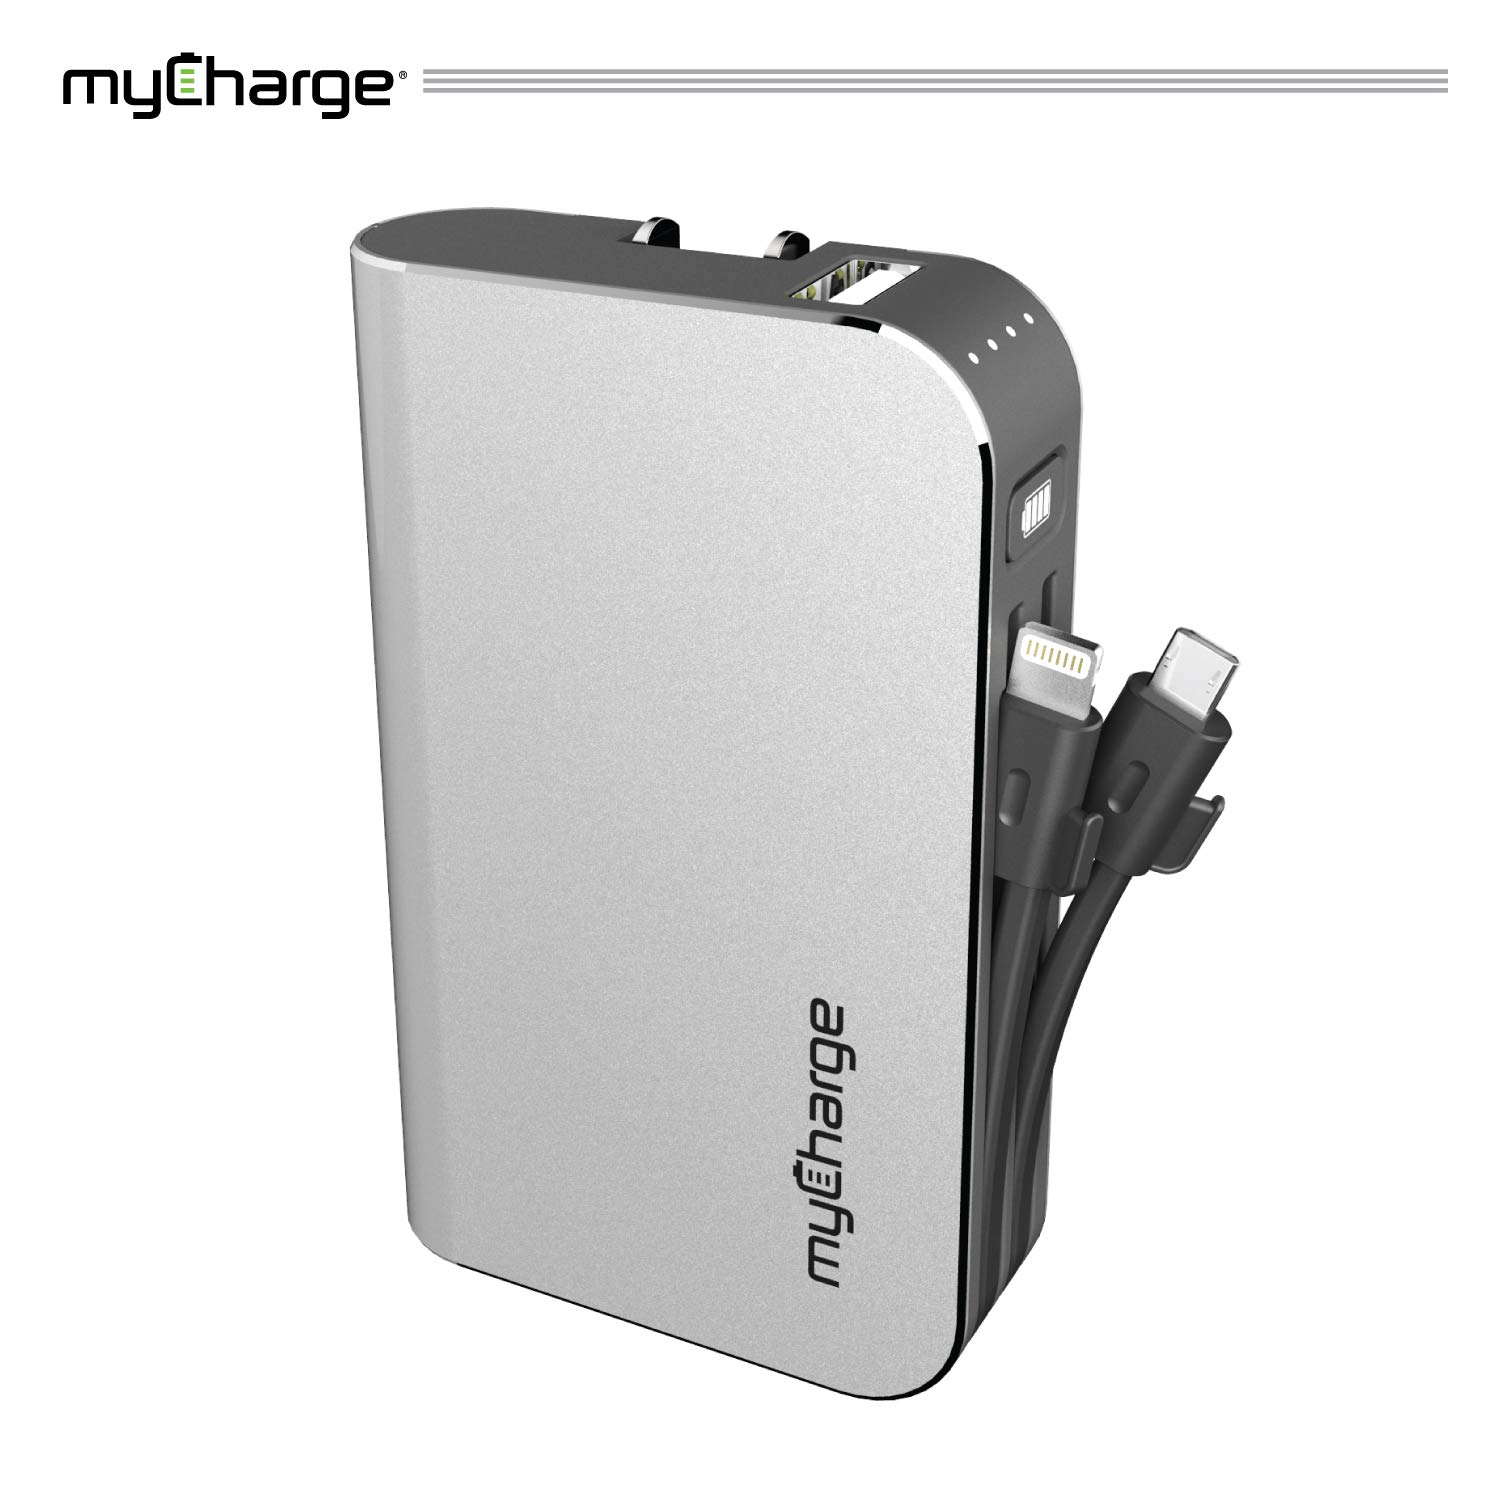 myCharge Portable Charger Power Bank - HubPlus 6700 mAh External Battery Pack | Wall Charger Foldable Plug | Built in Cables (Apple iPhone Charger Lightning Cable and Android Samsung Micro USB Cable by myCharge